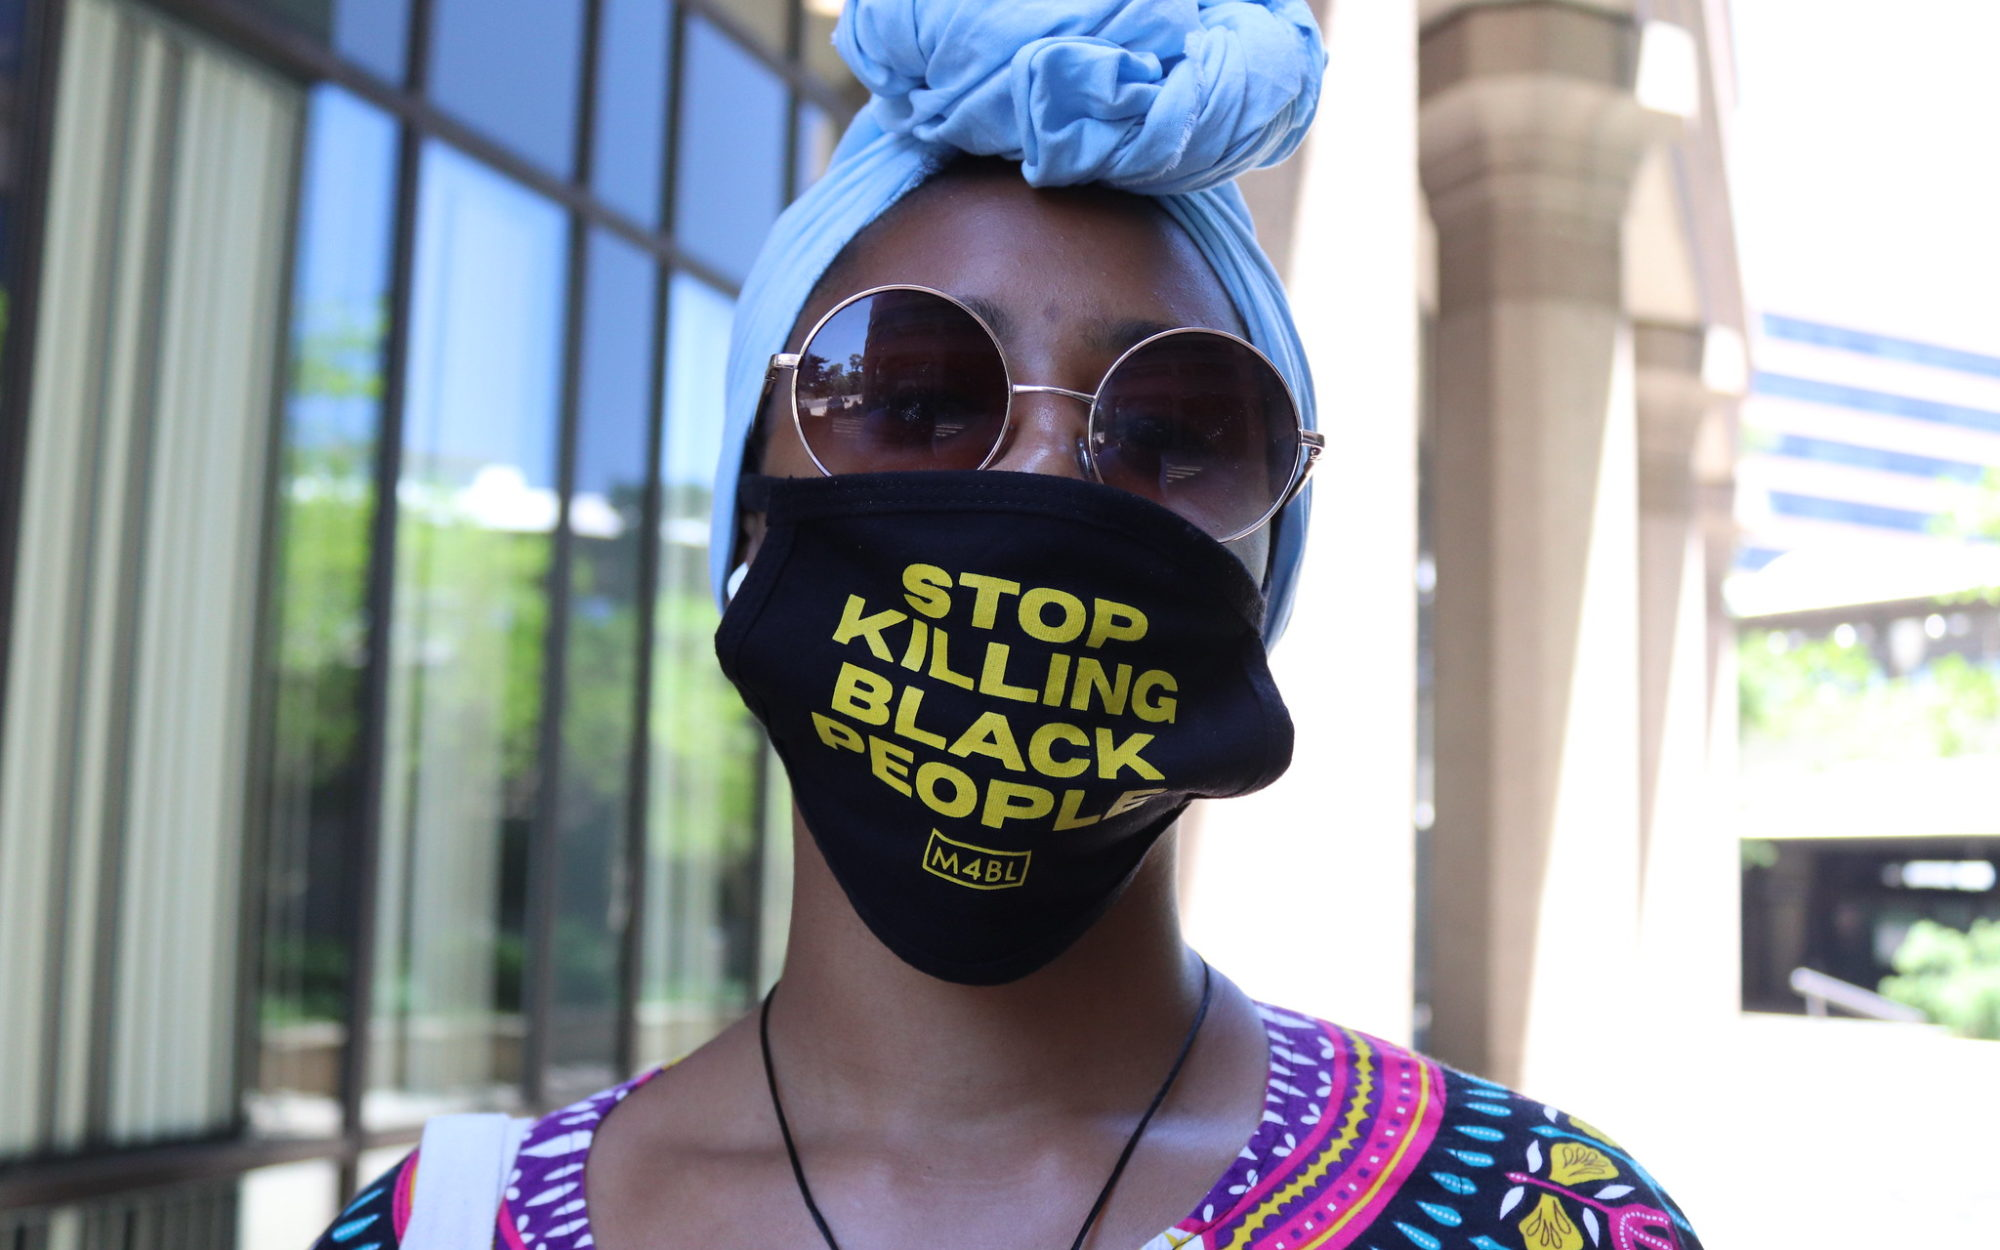 Black woman wearing a 'Stop Killing Black People' mask. Demonstrates that even withing a global pandemic, black people are fighting for their lives everyday